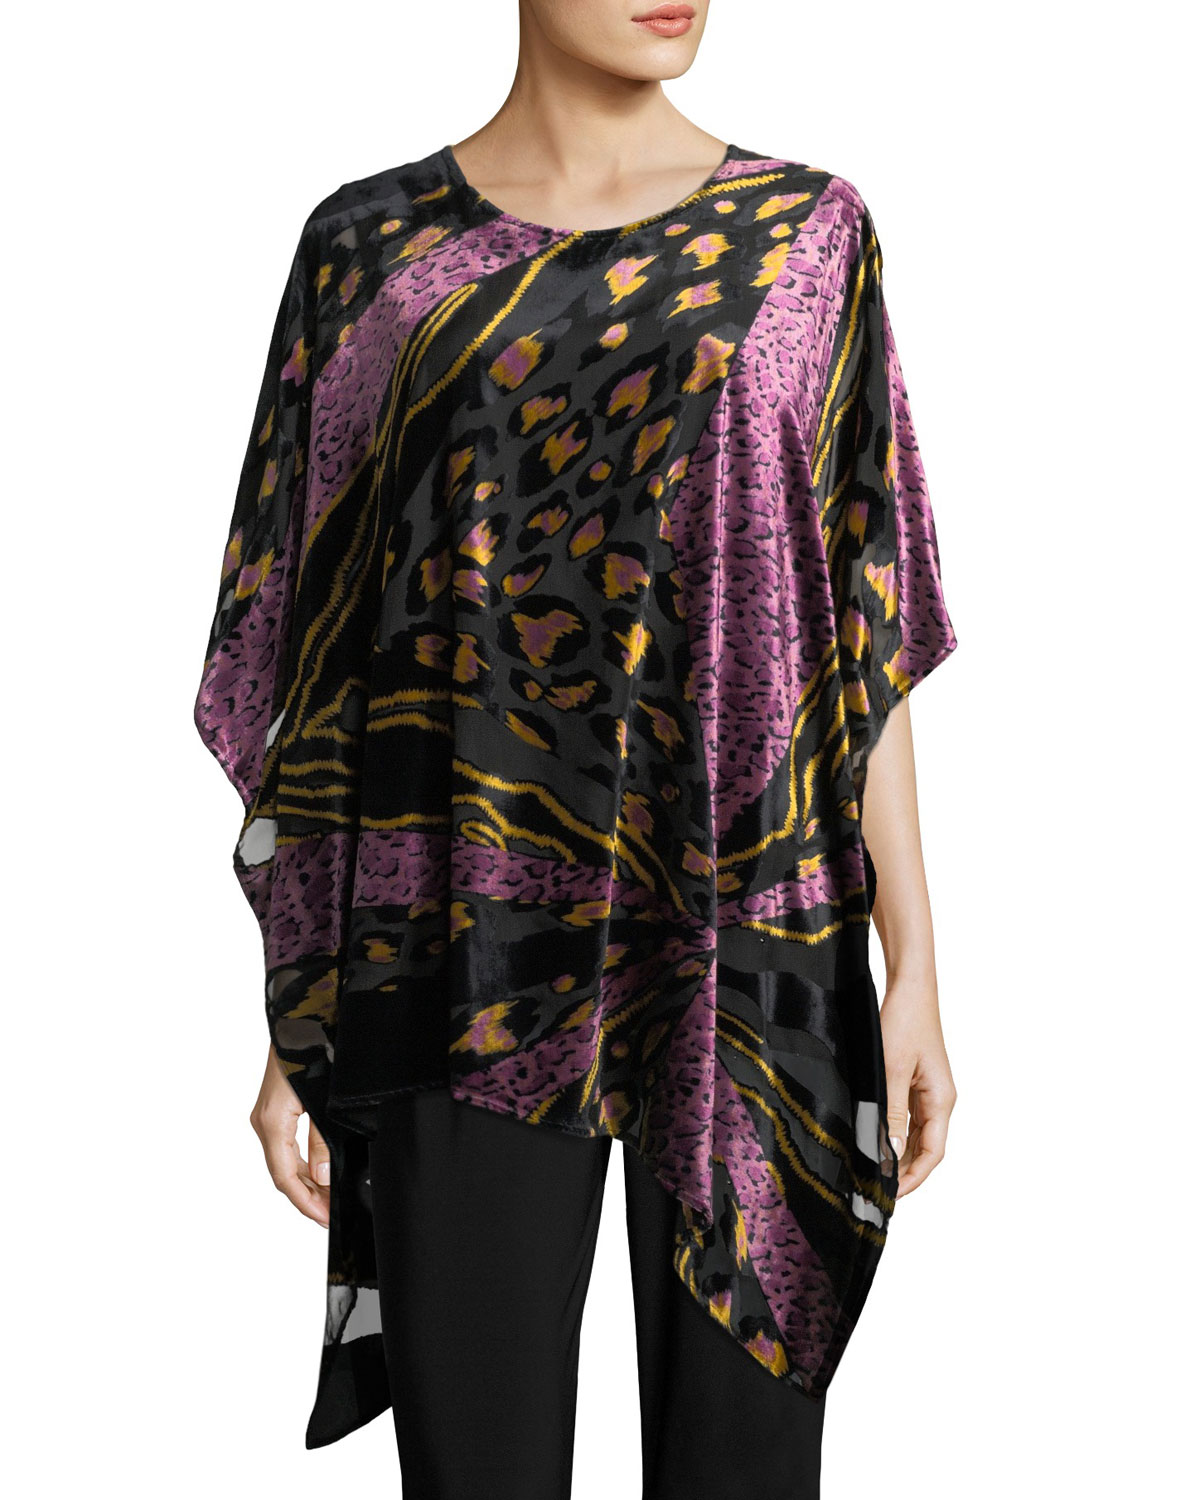 Party Animal Devore Velvet Caftan, Petite